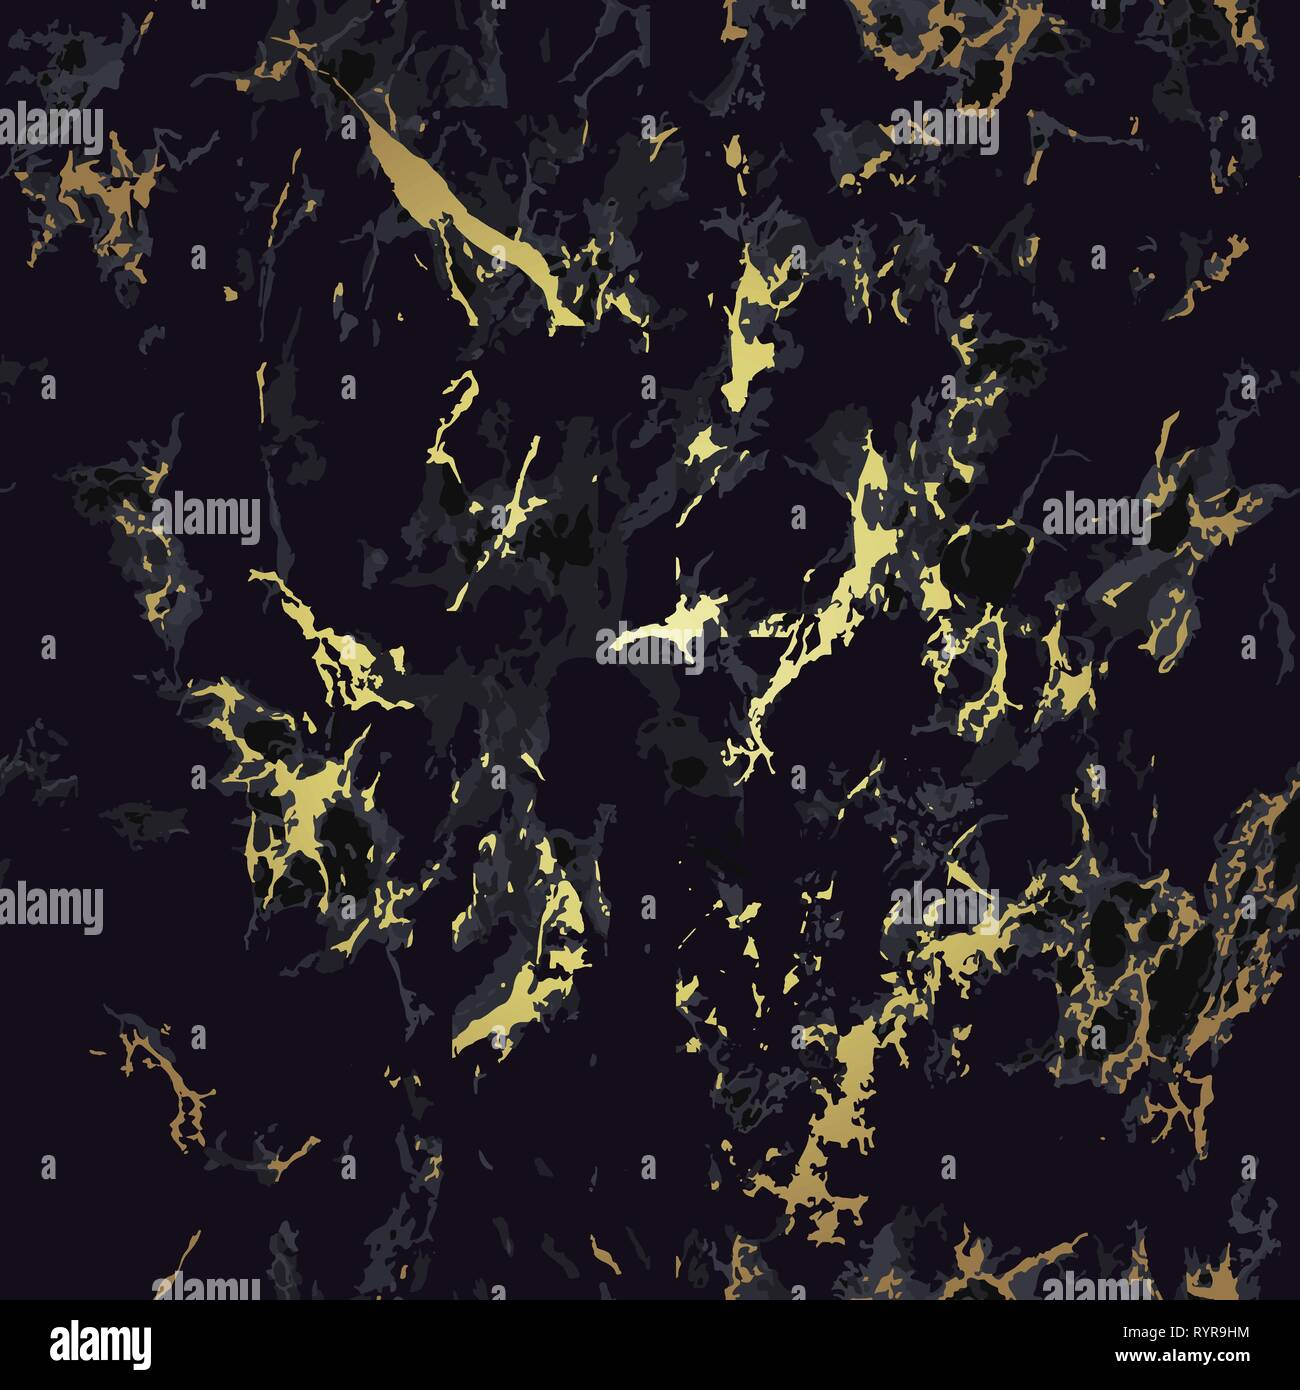 Black And Gold Marble Seamless Texture Pattern Stock Vector Image Art Alamy